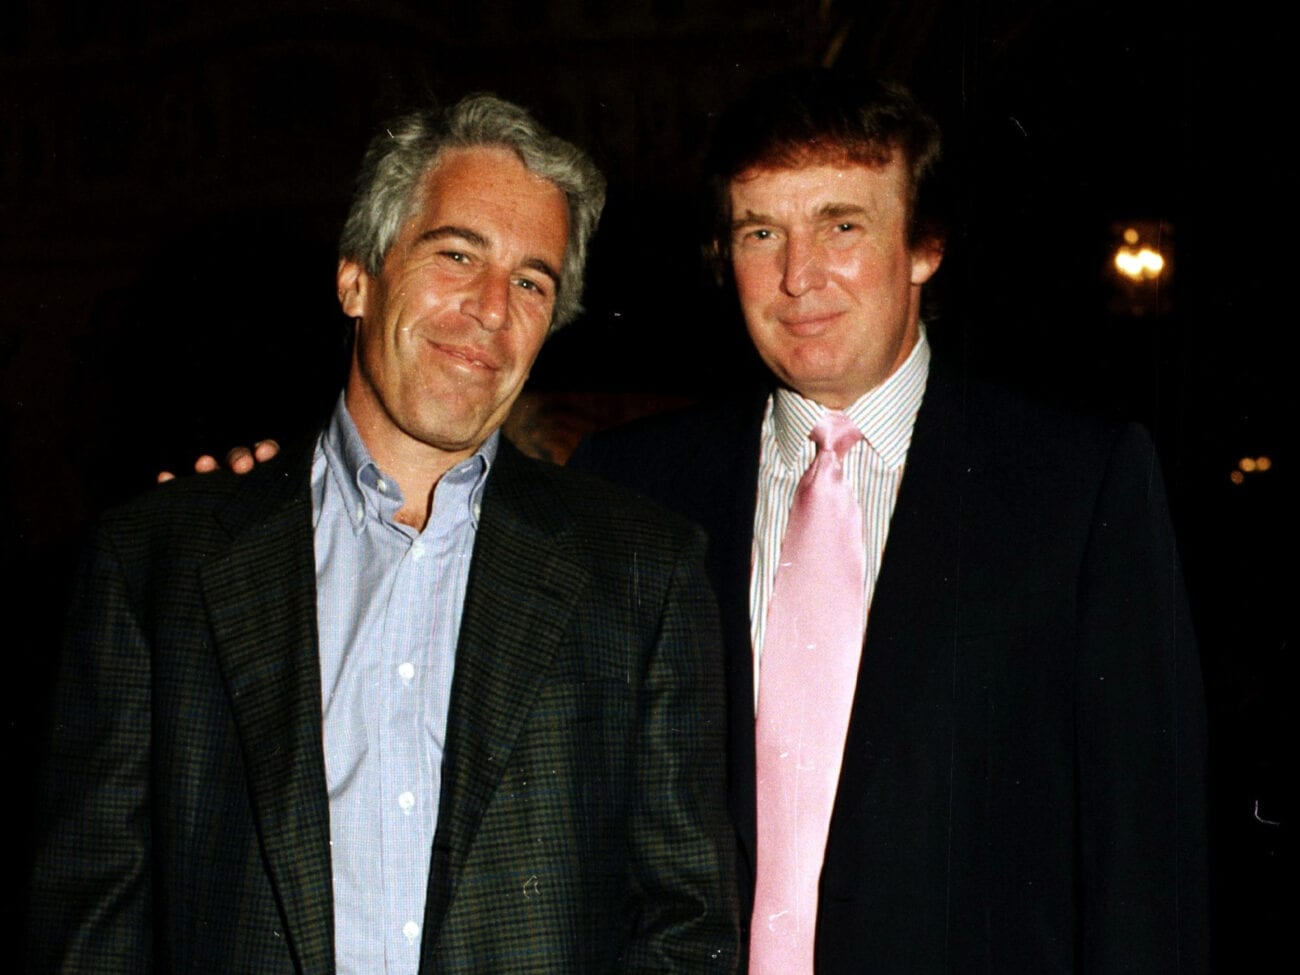 What happened between Jeffrey Epstein and Donald Trump in Mar-A-Lago? Check out everything we know.